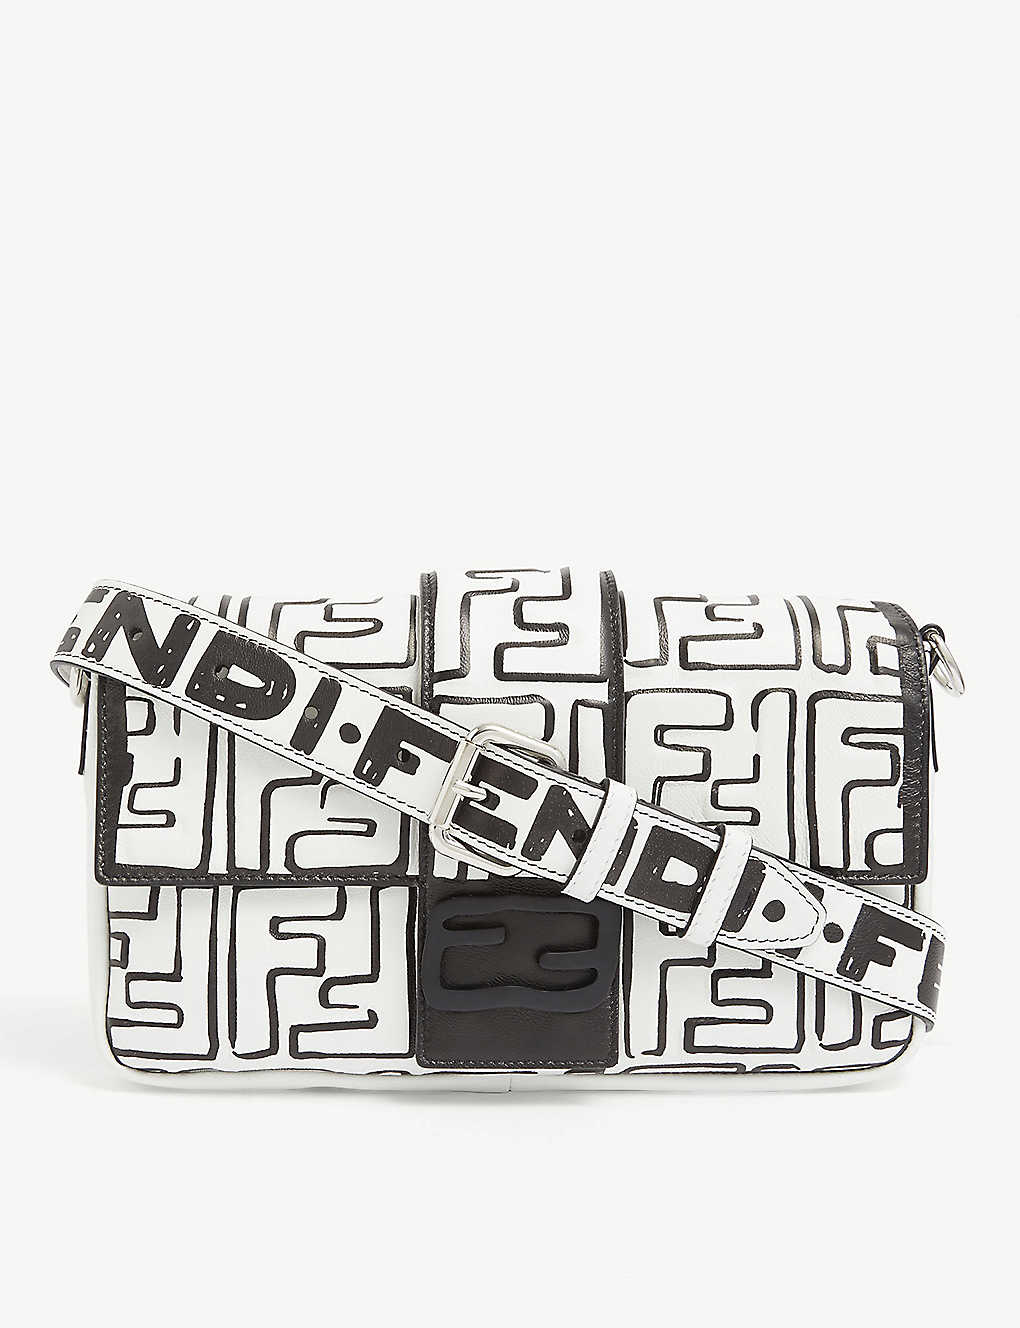 FENDI: Fendi X Joshua Vides leather cross-body bag